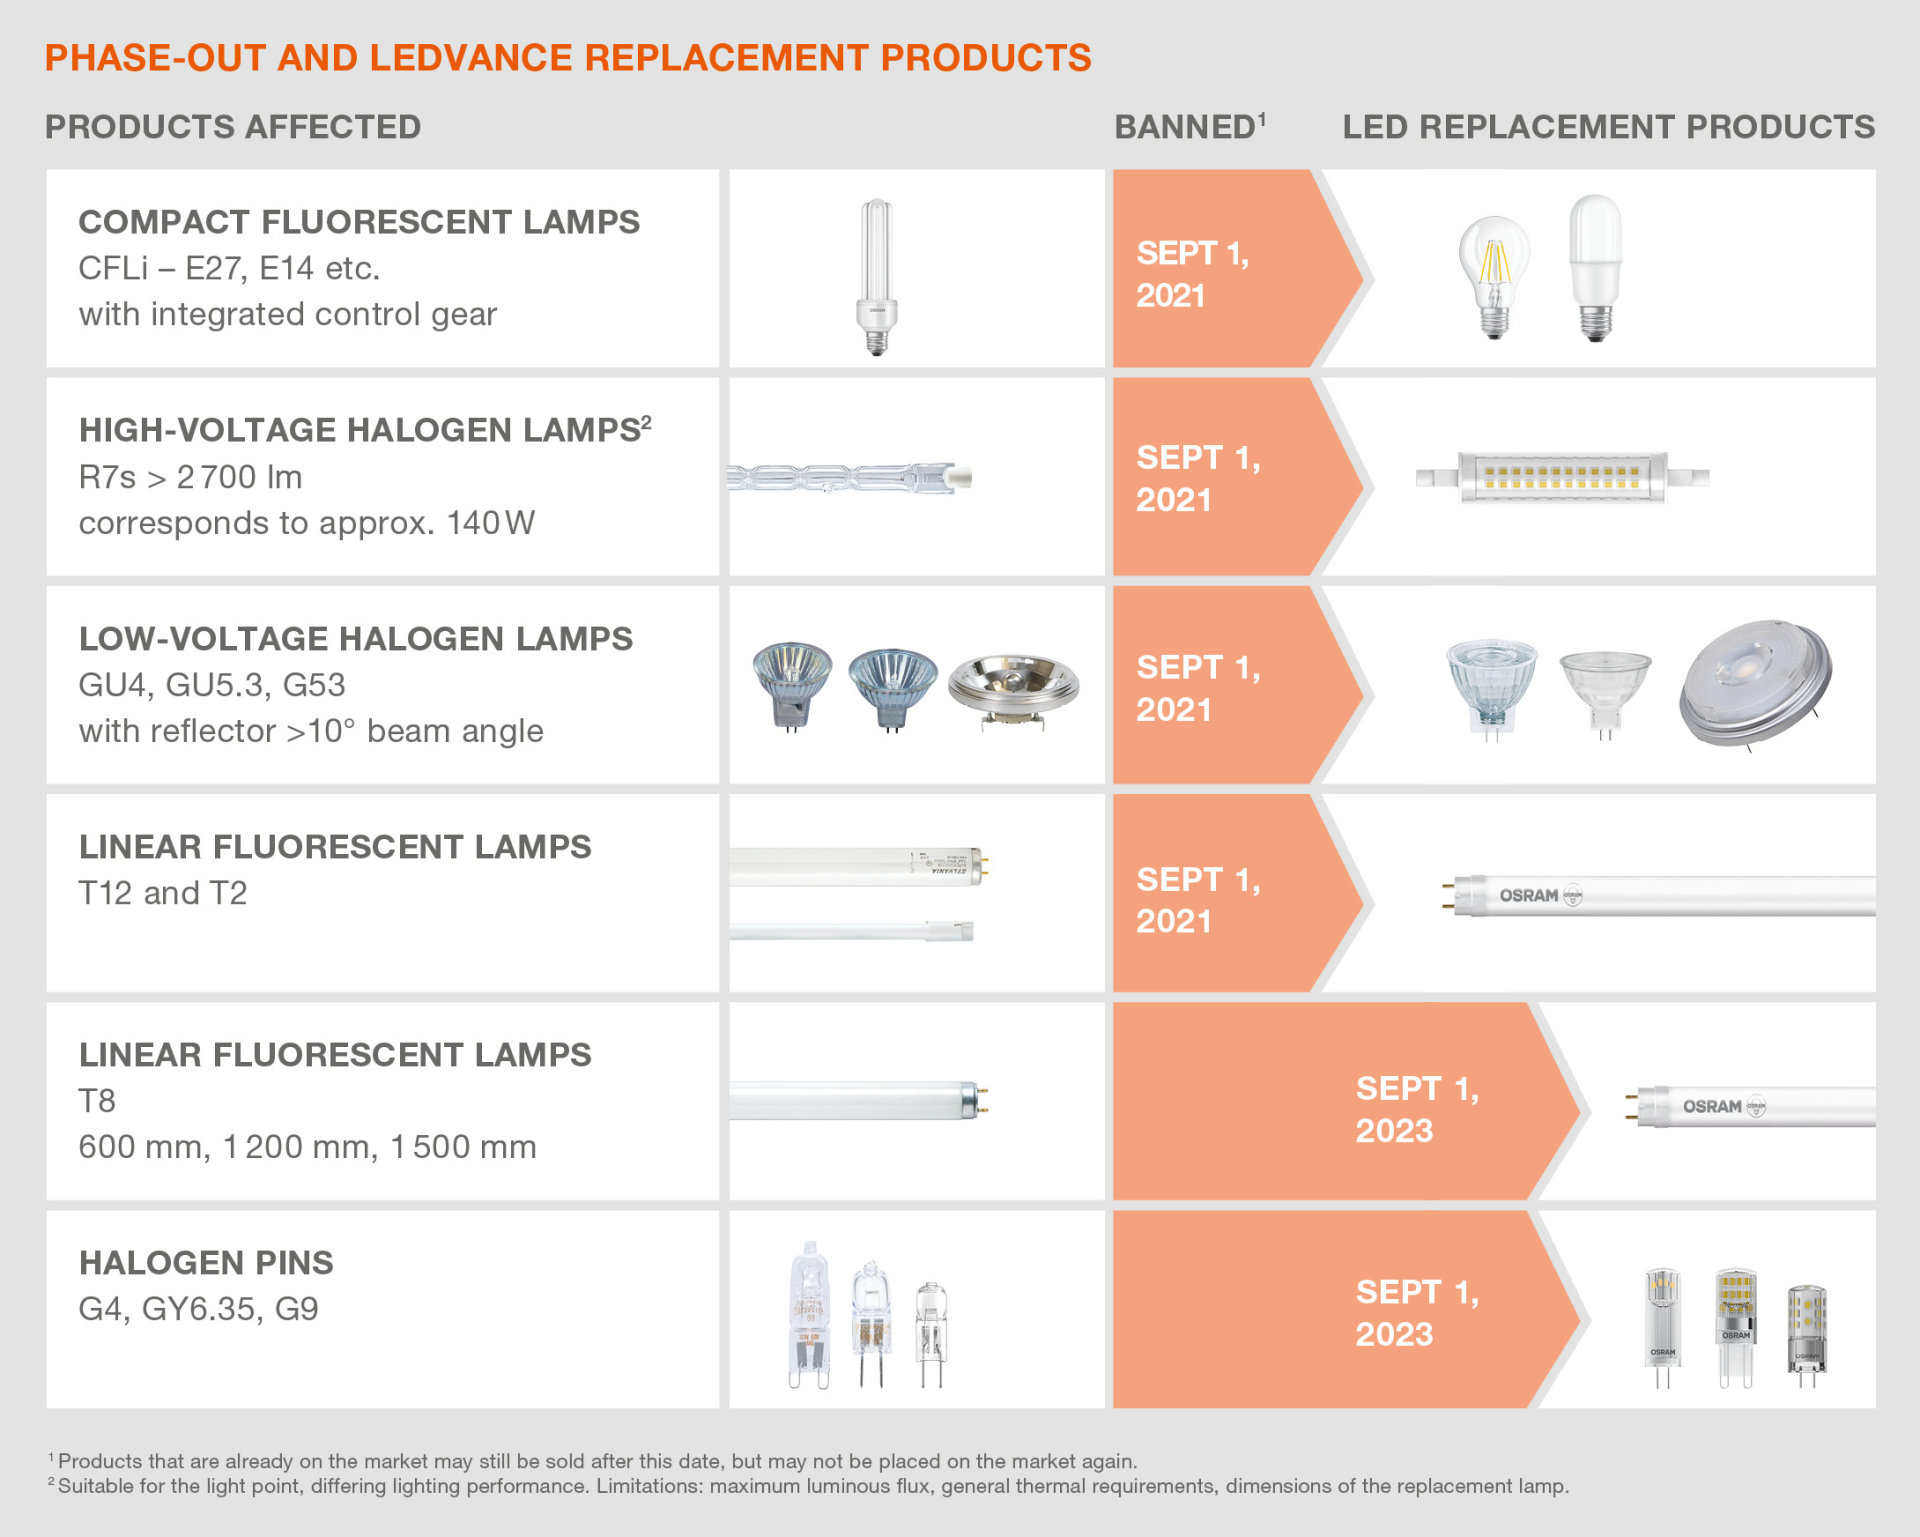 Table Phase-out and LEDVANCE replacement products